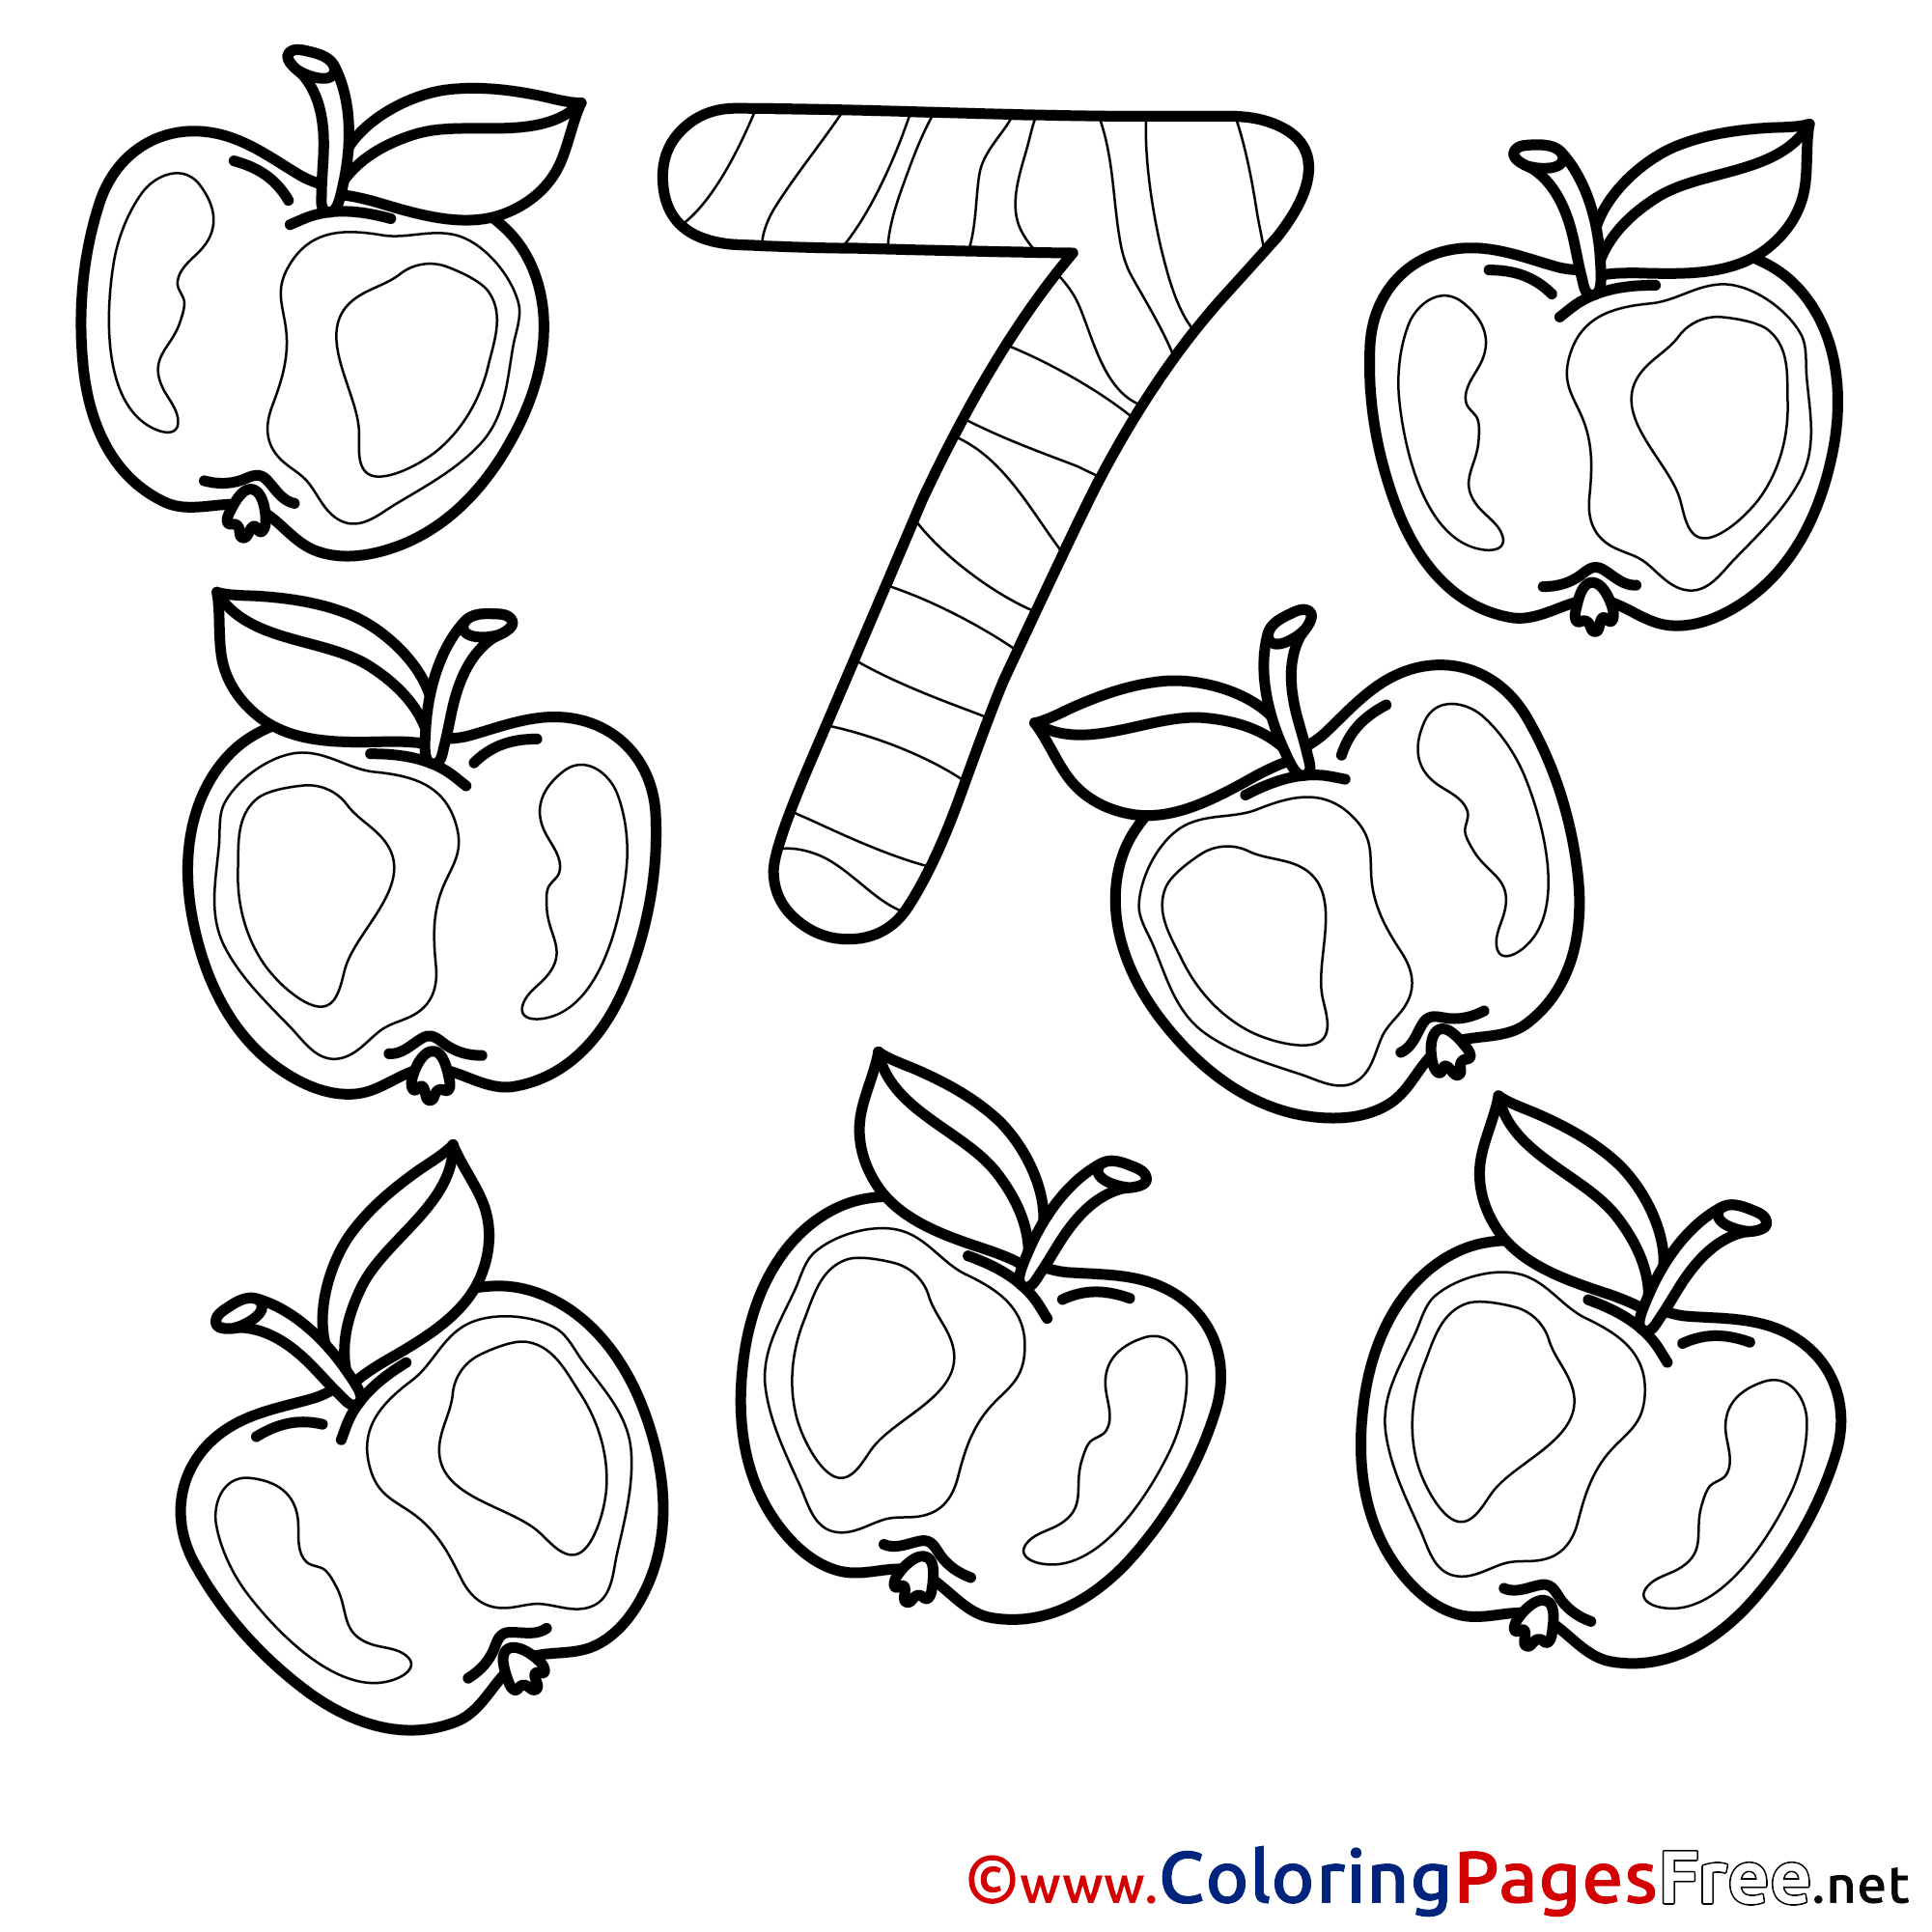 7 Apples download Numbers Coloring Pages